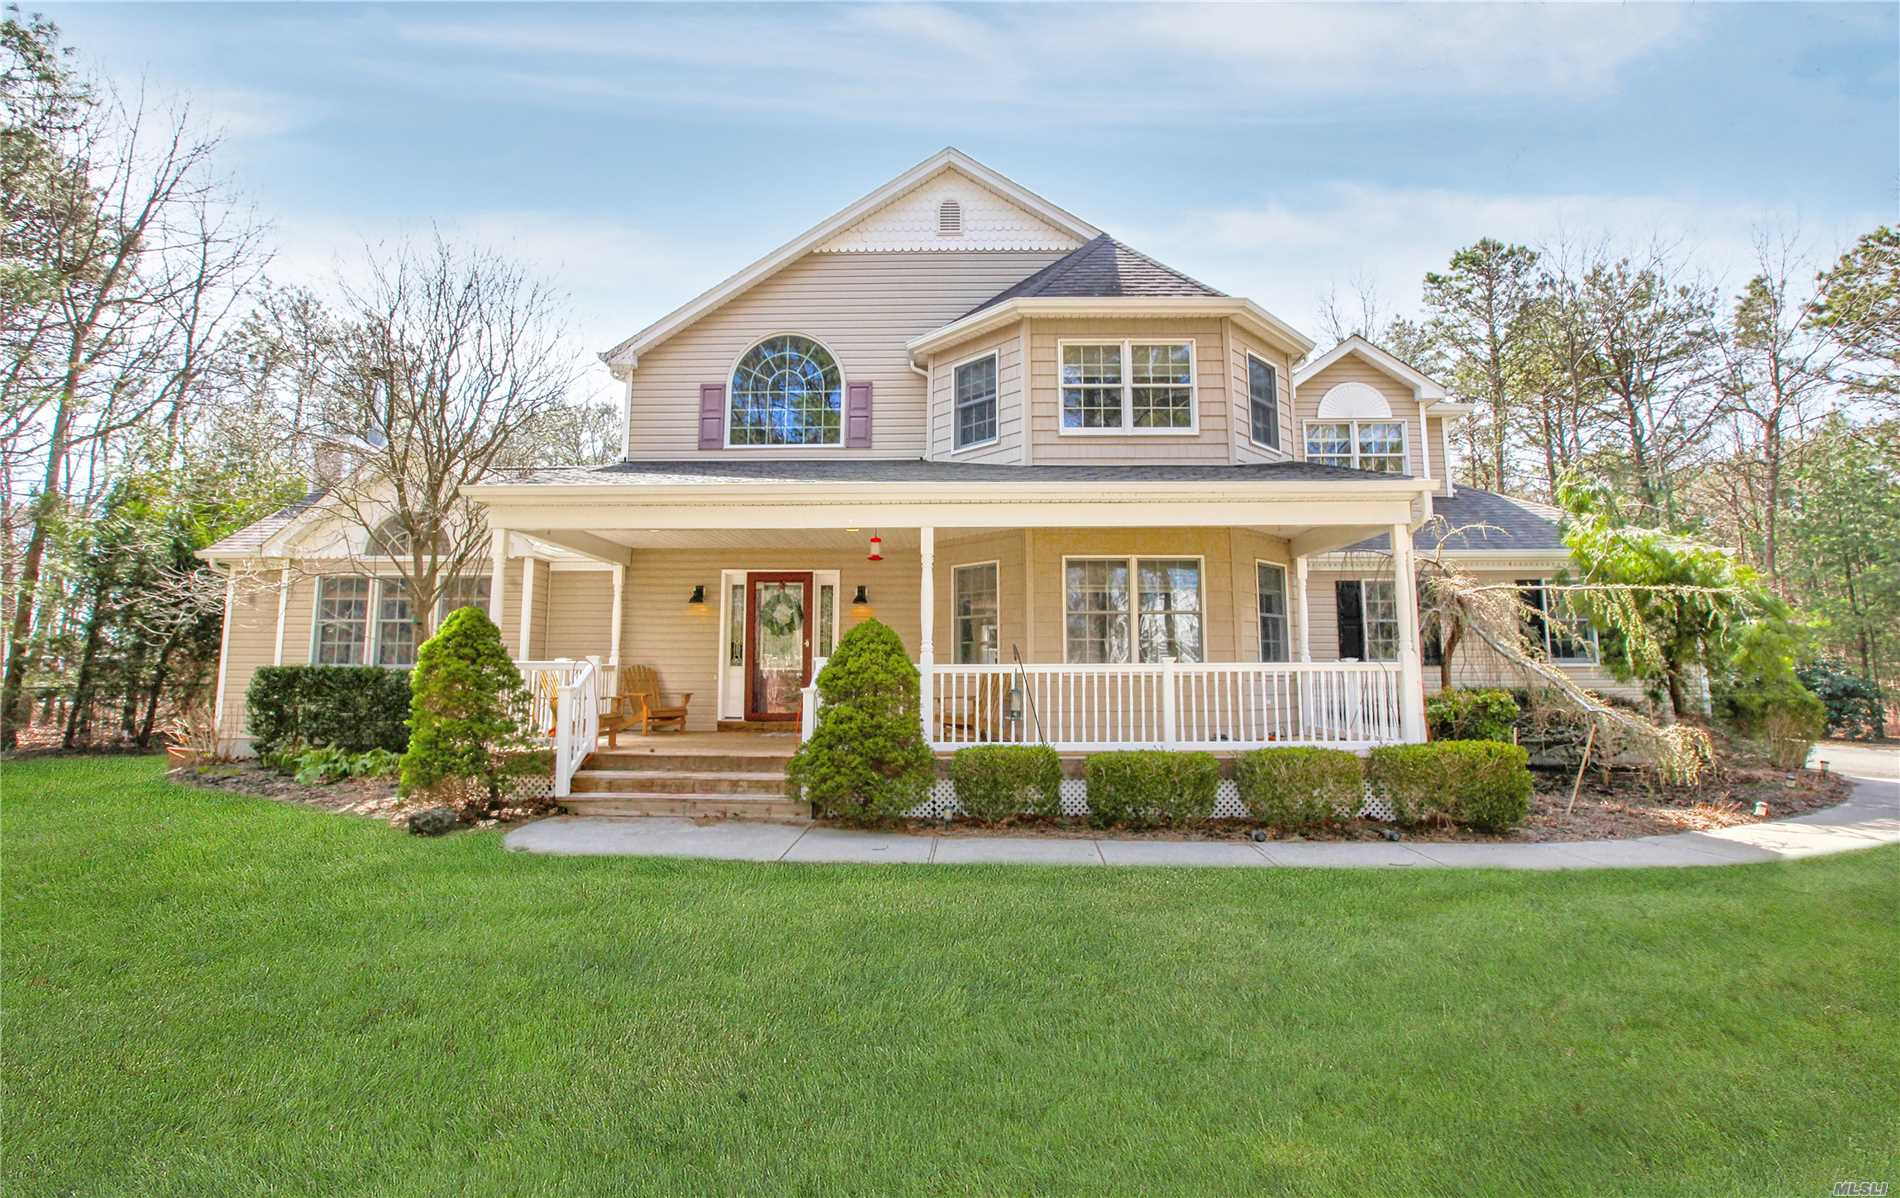 Amazing 4 Bedroom 2.5 Bath Custom Built Victorian Nestled On Almost 2 Acres Of Privacy. Featuring High Ceilings, Wood Floors Throughout, Great Room w/Fireplace! Full Basement w/Room for Mom. Tranquil Setting with Huge Front Porch and Parklike Backyard for Entertaining.